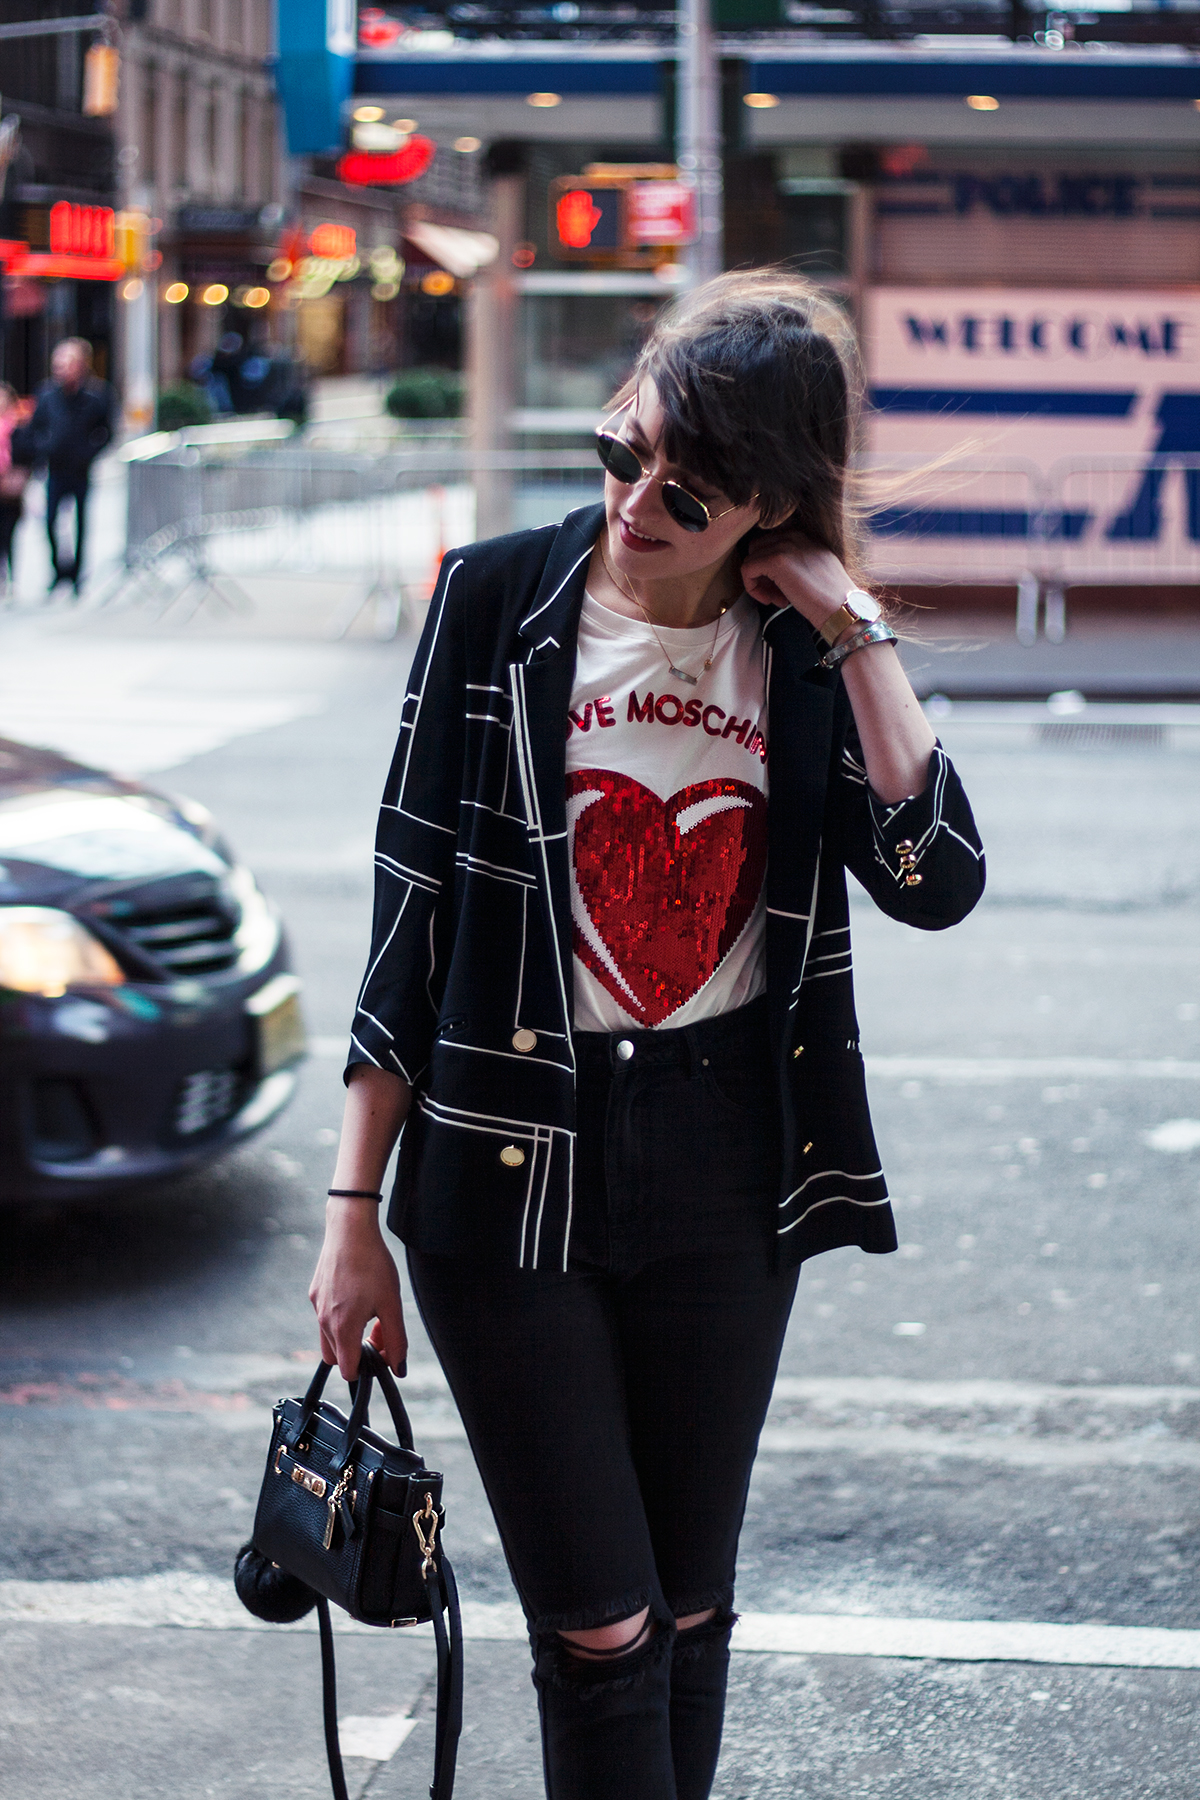 times-square-moschino-sequin-shirt-fashion-blogger-outfit-4